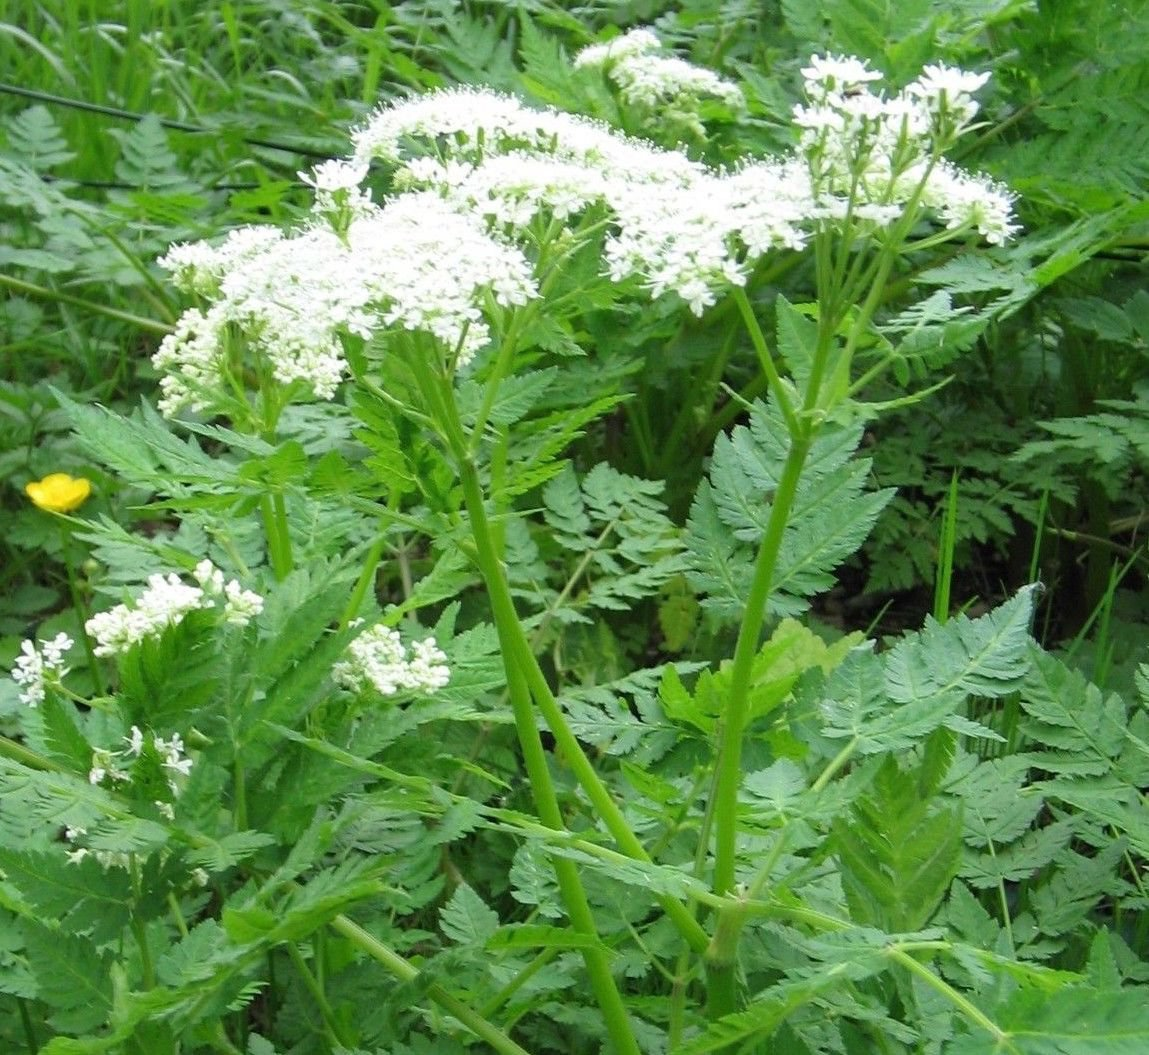 Caraway Carum carvi 400 seeds * Grow your own herb * ez grow * *SHIPPING FROM US* CombSH E25